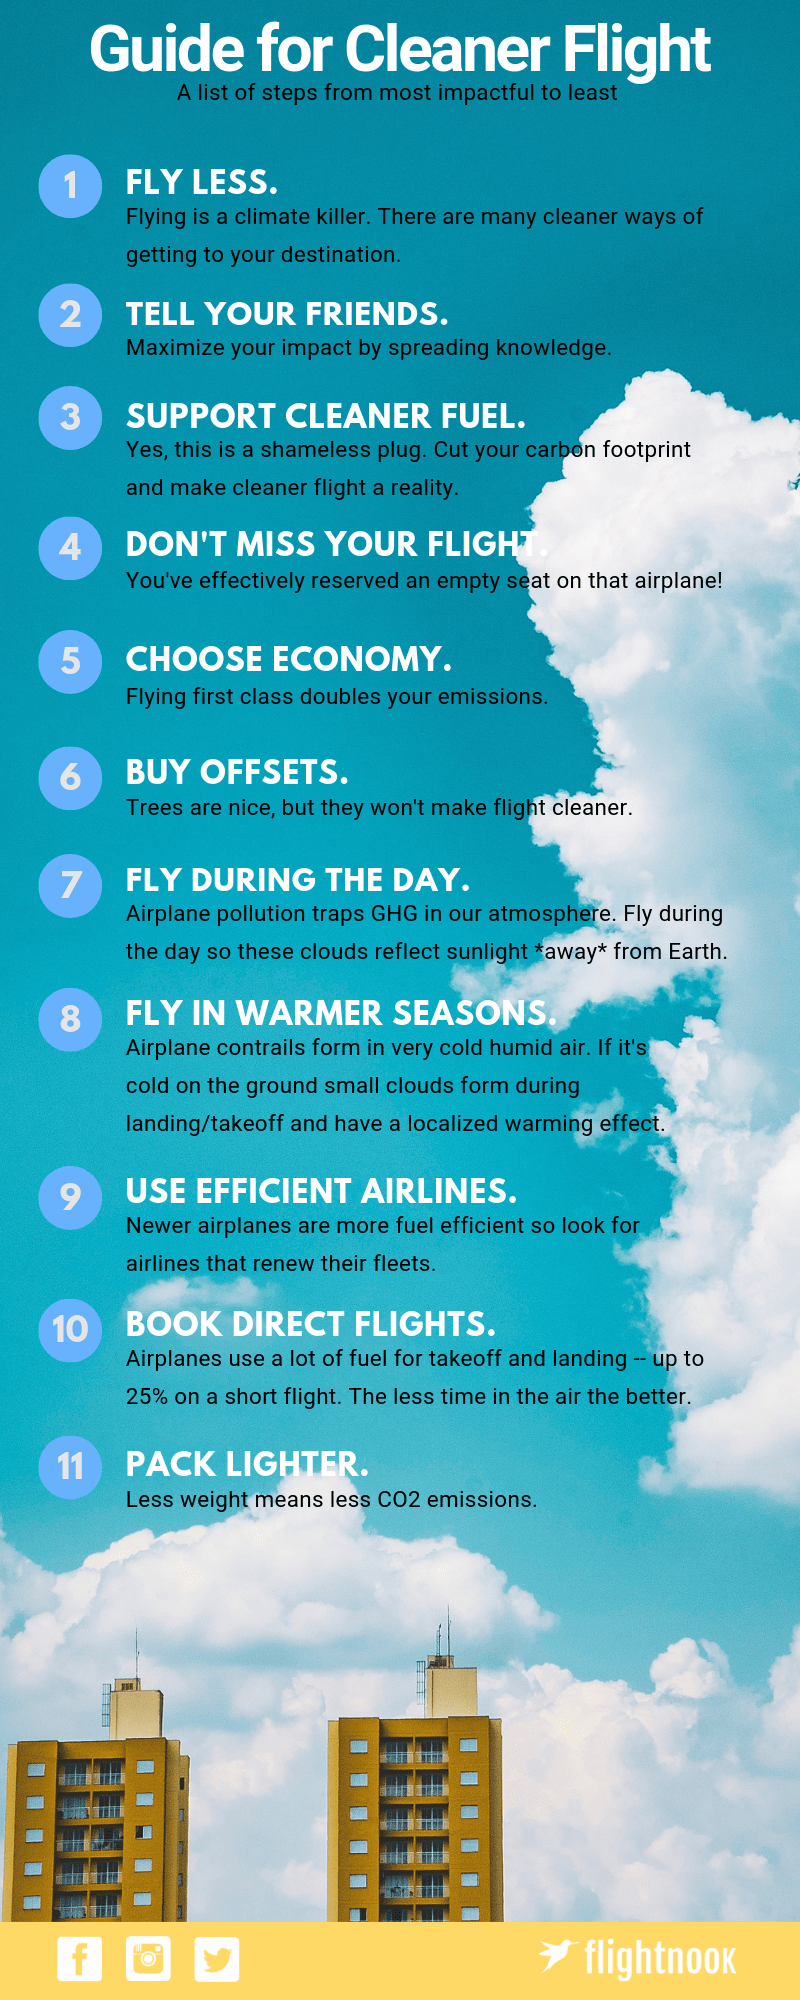 Flightnook- Guide More Sustainable Flight